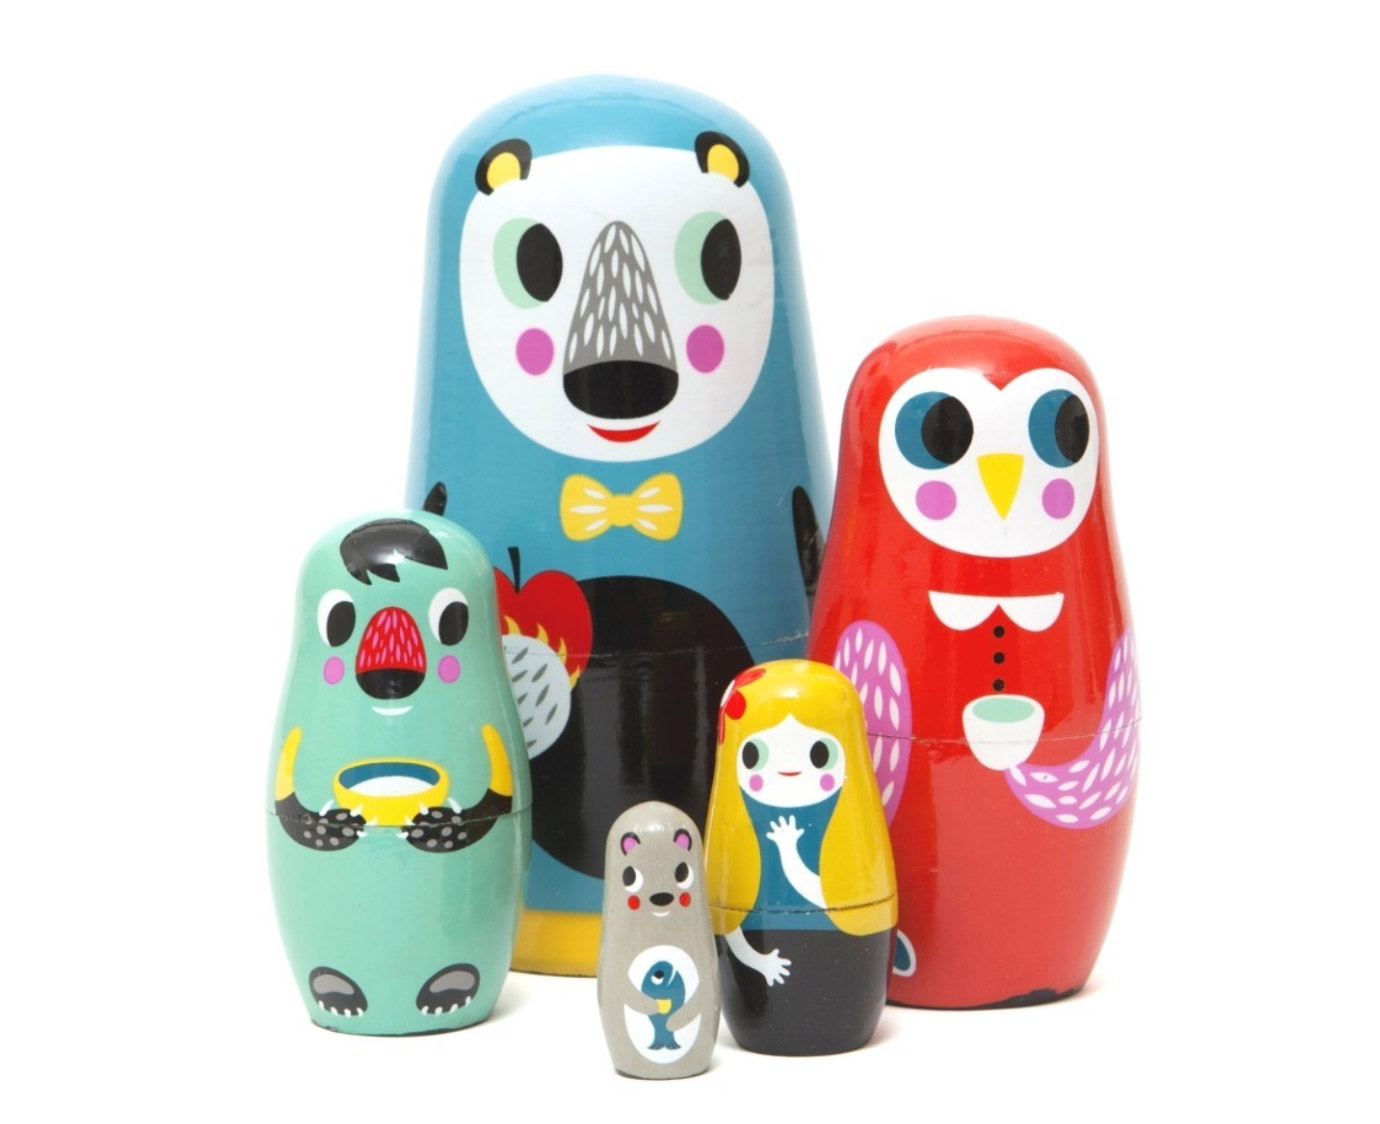 Nesting dolls 'In the woods' 1